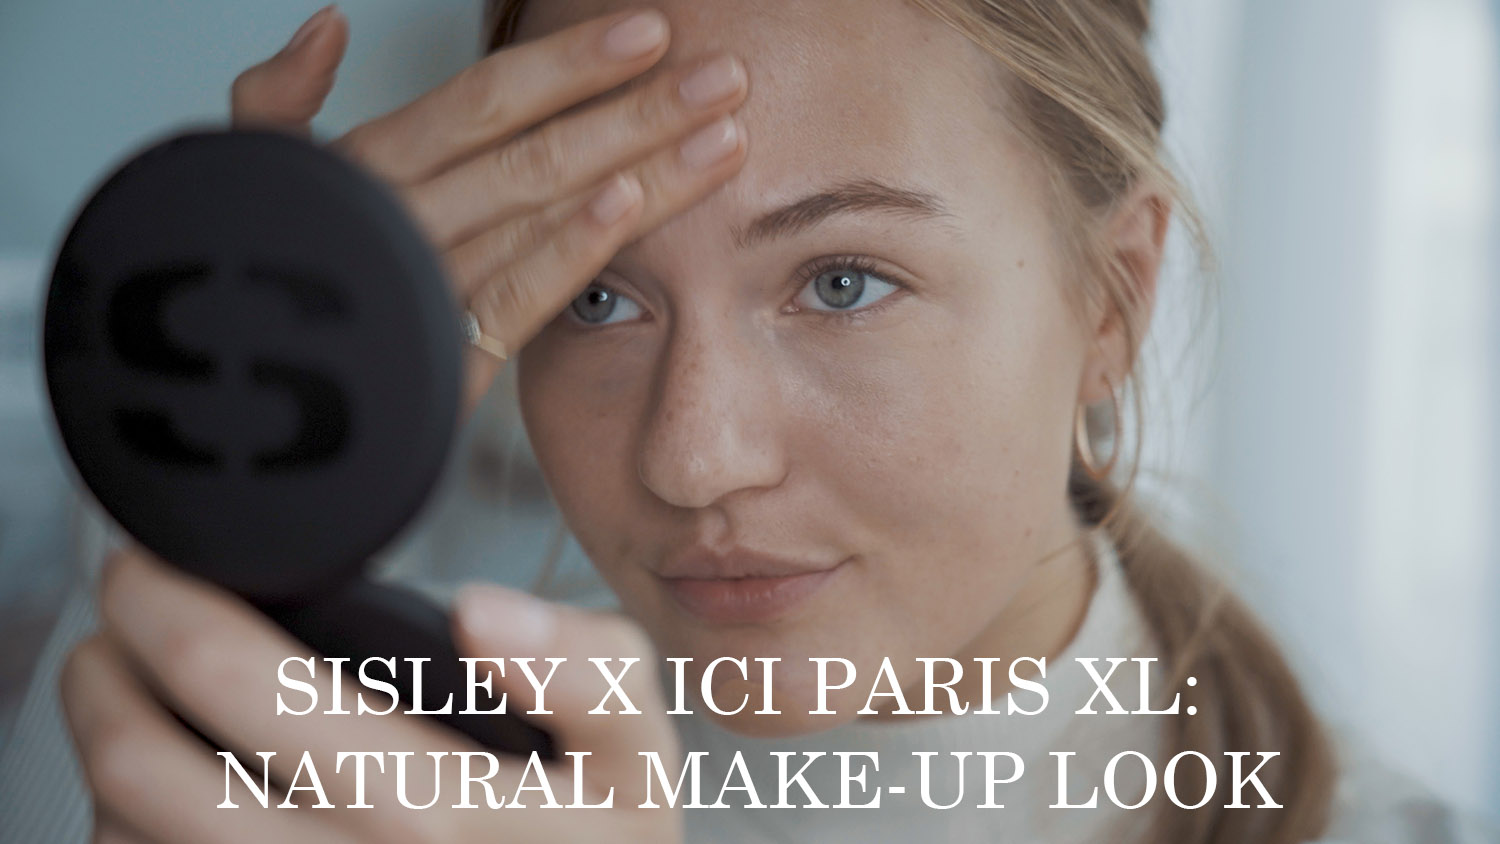 floortjeloves, sisley, ici paris xl, make-up tutorial, tutorial, natural make-up look, natural make-up tutorial, natural make-up